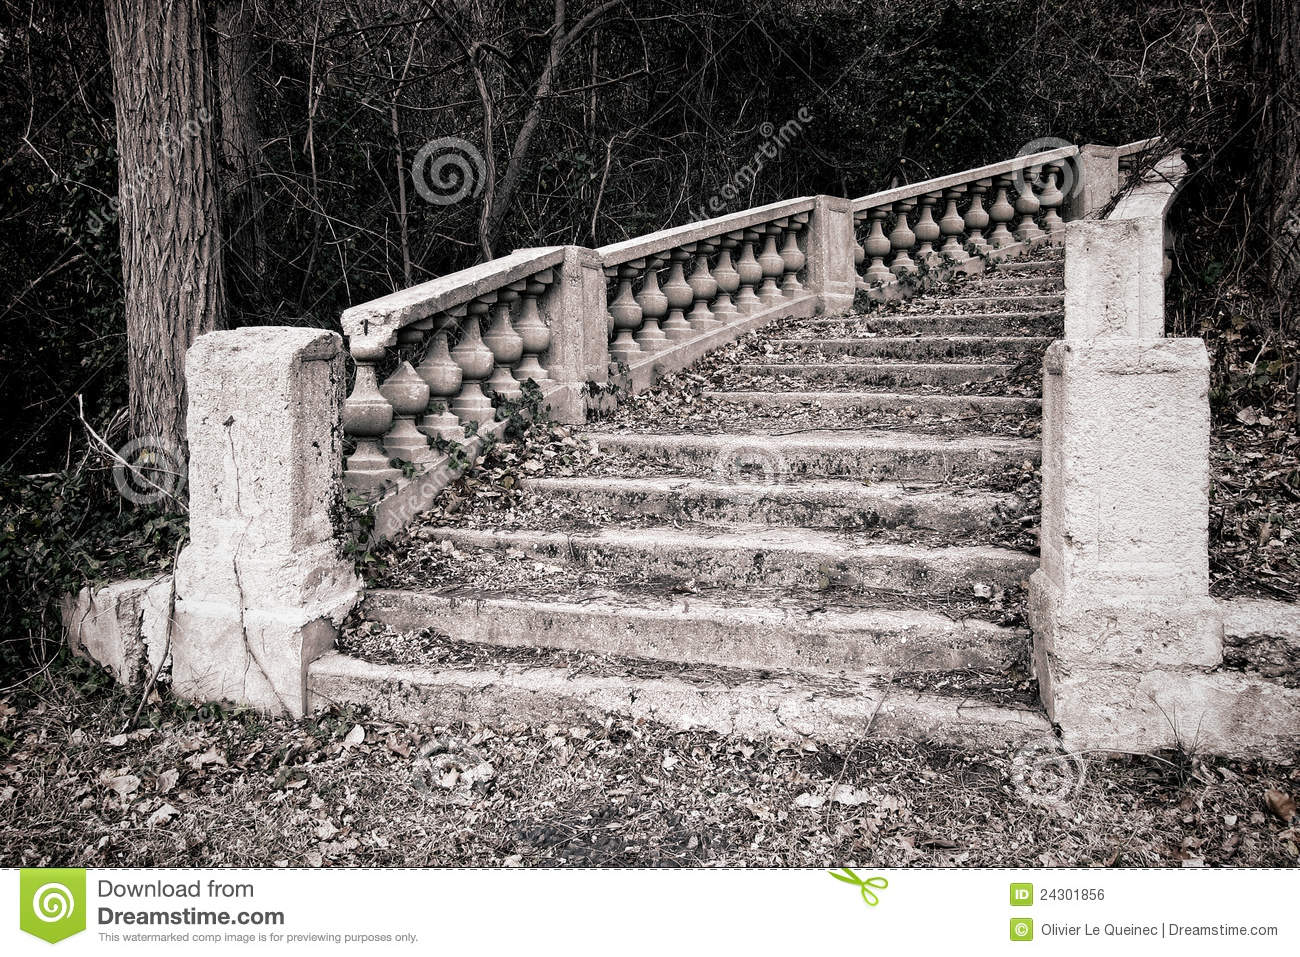 Abandoned Monumental Staircase in Overgrown Woods